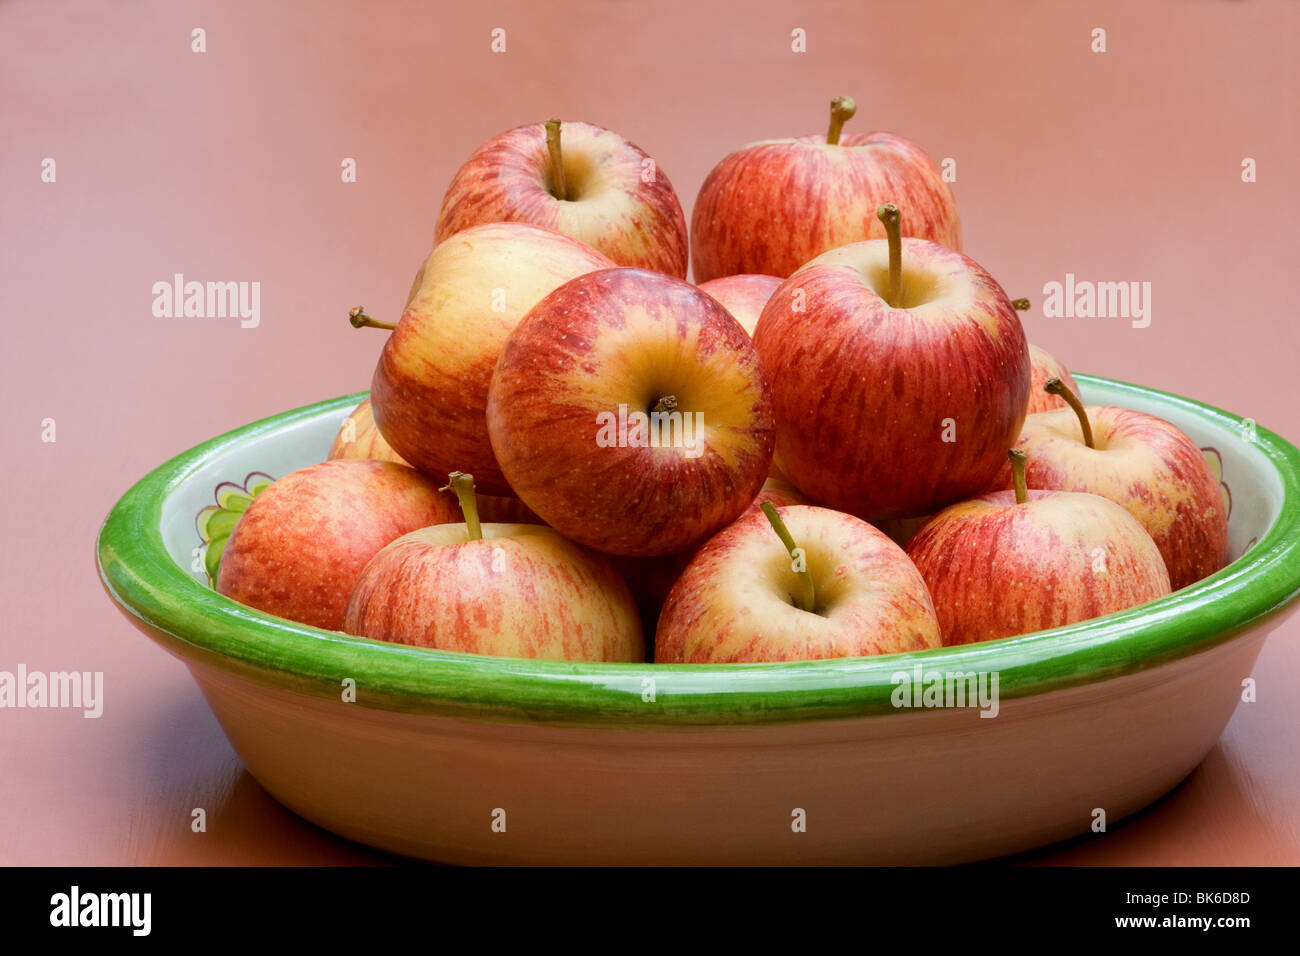 Close-up red apples on peachy background - Stock Image